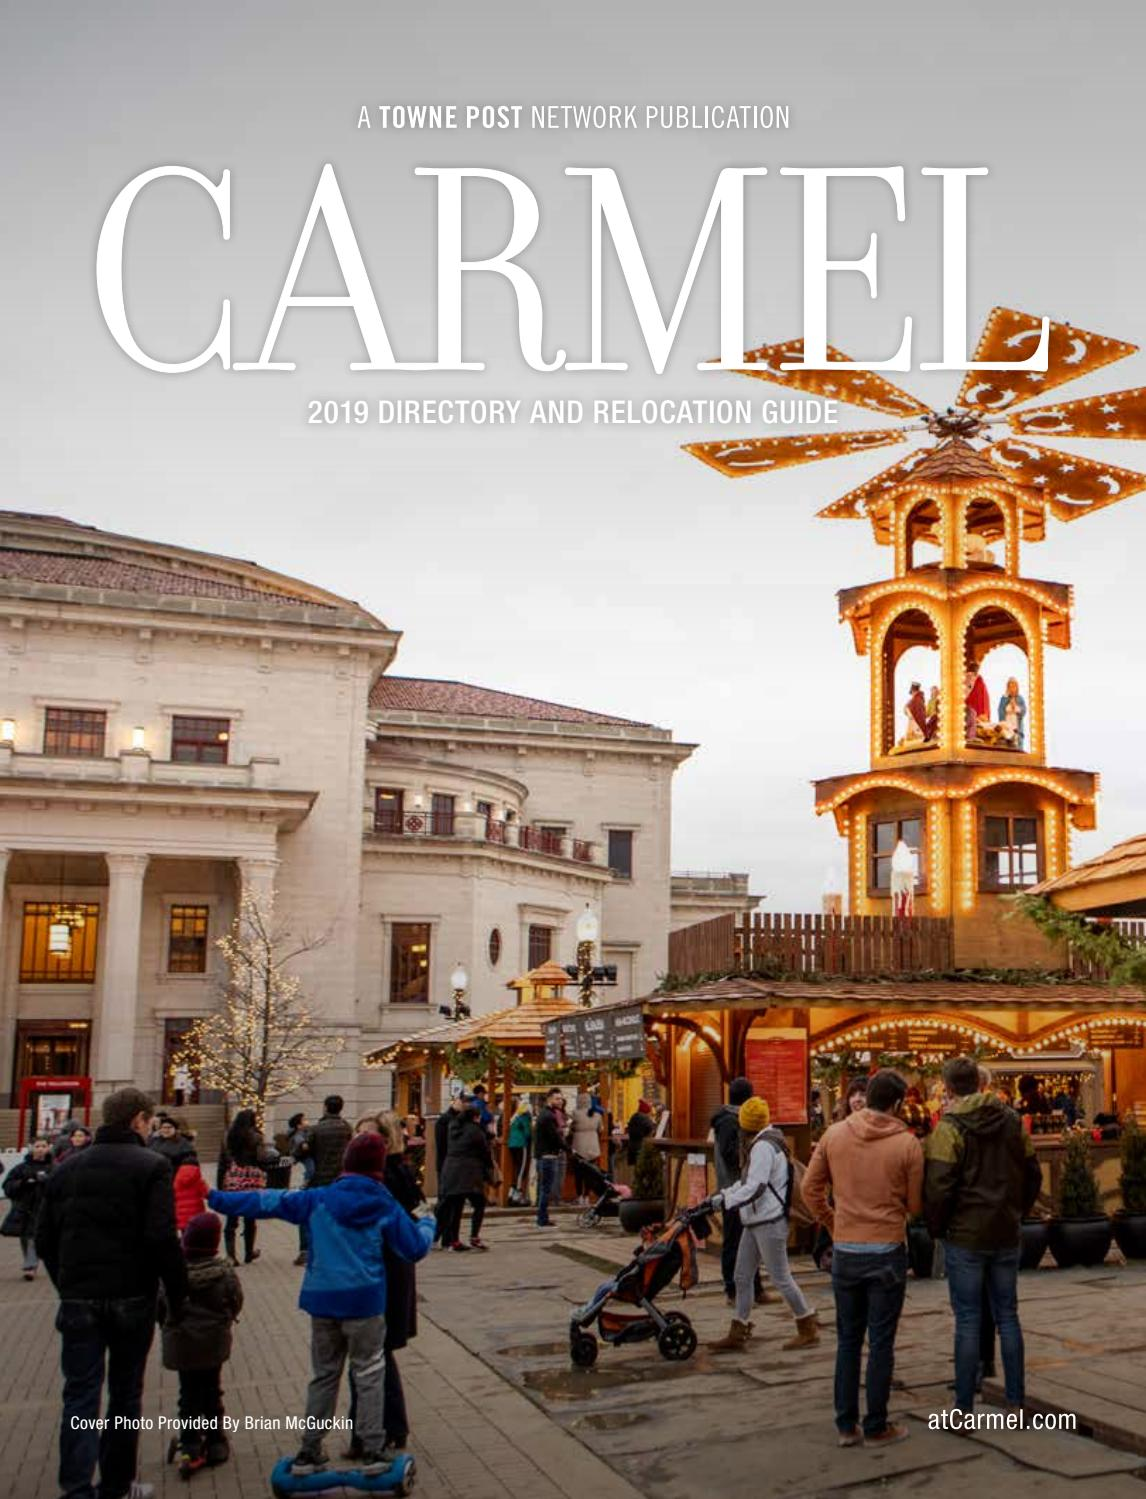 Carmel Magazine 2019 Directory And Relocation Guide By Towne Post Network Inc Issuu